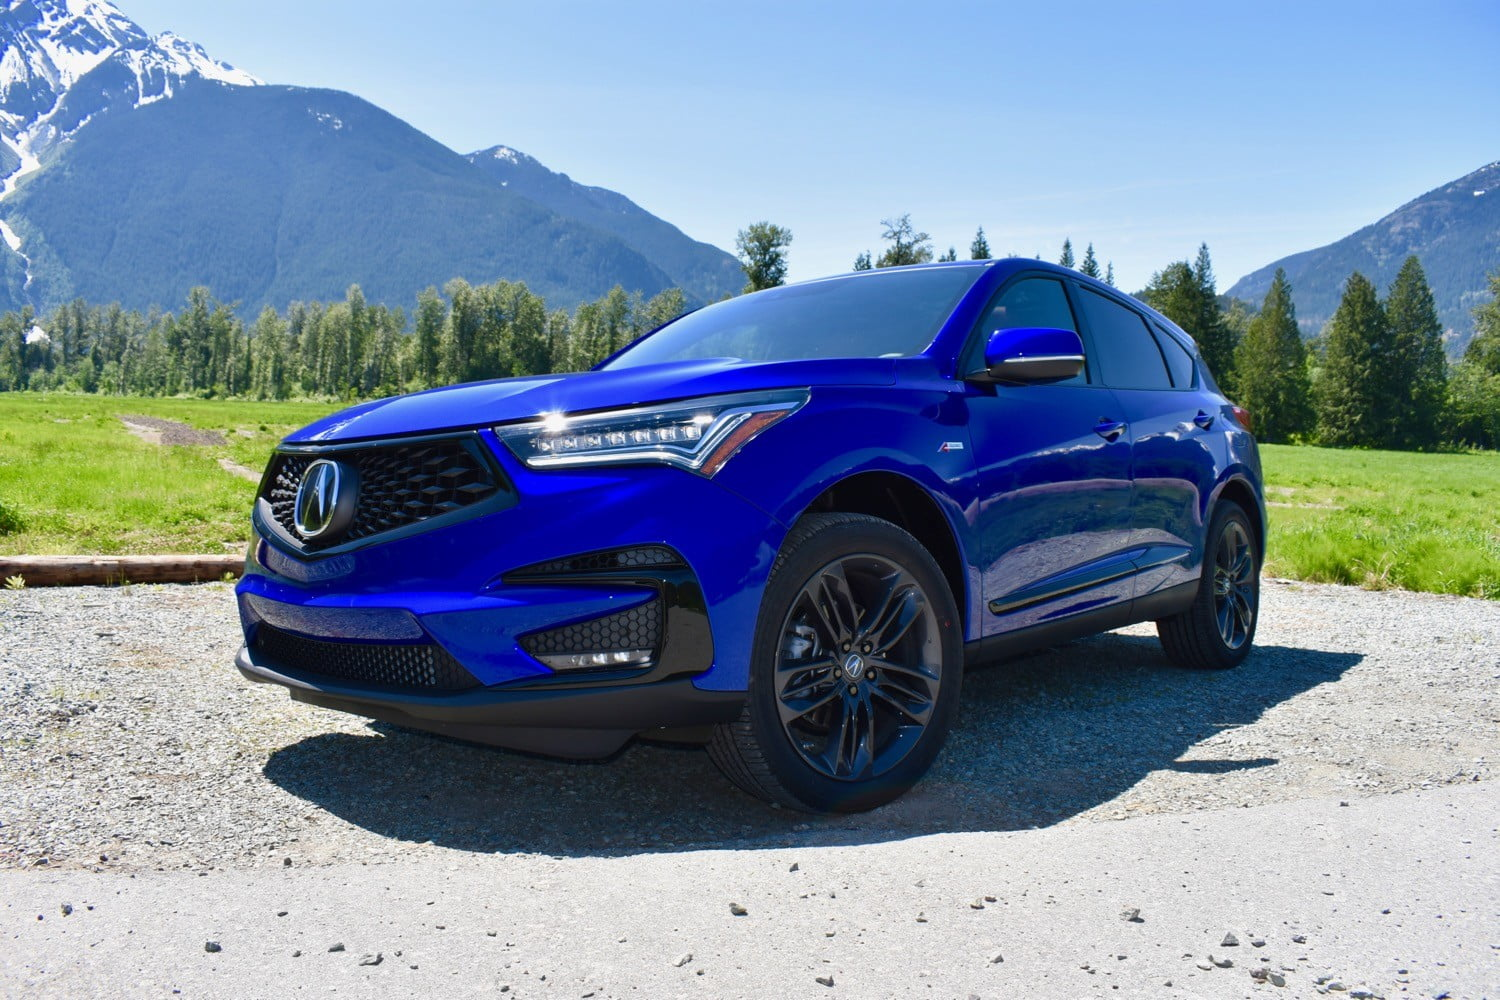 2018 Acura RDX: Possible Redesign, Changes, Price >> 2019 Acura Rdx Compact Luxury Suv Starts At 38 295